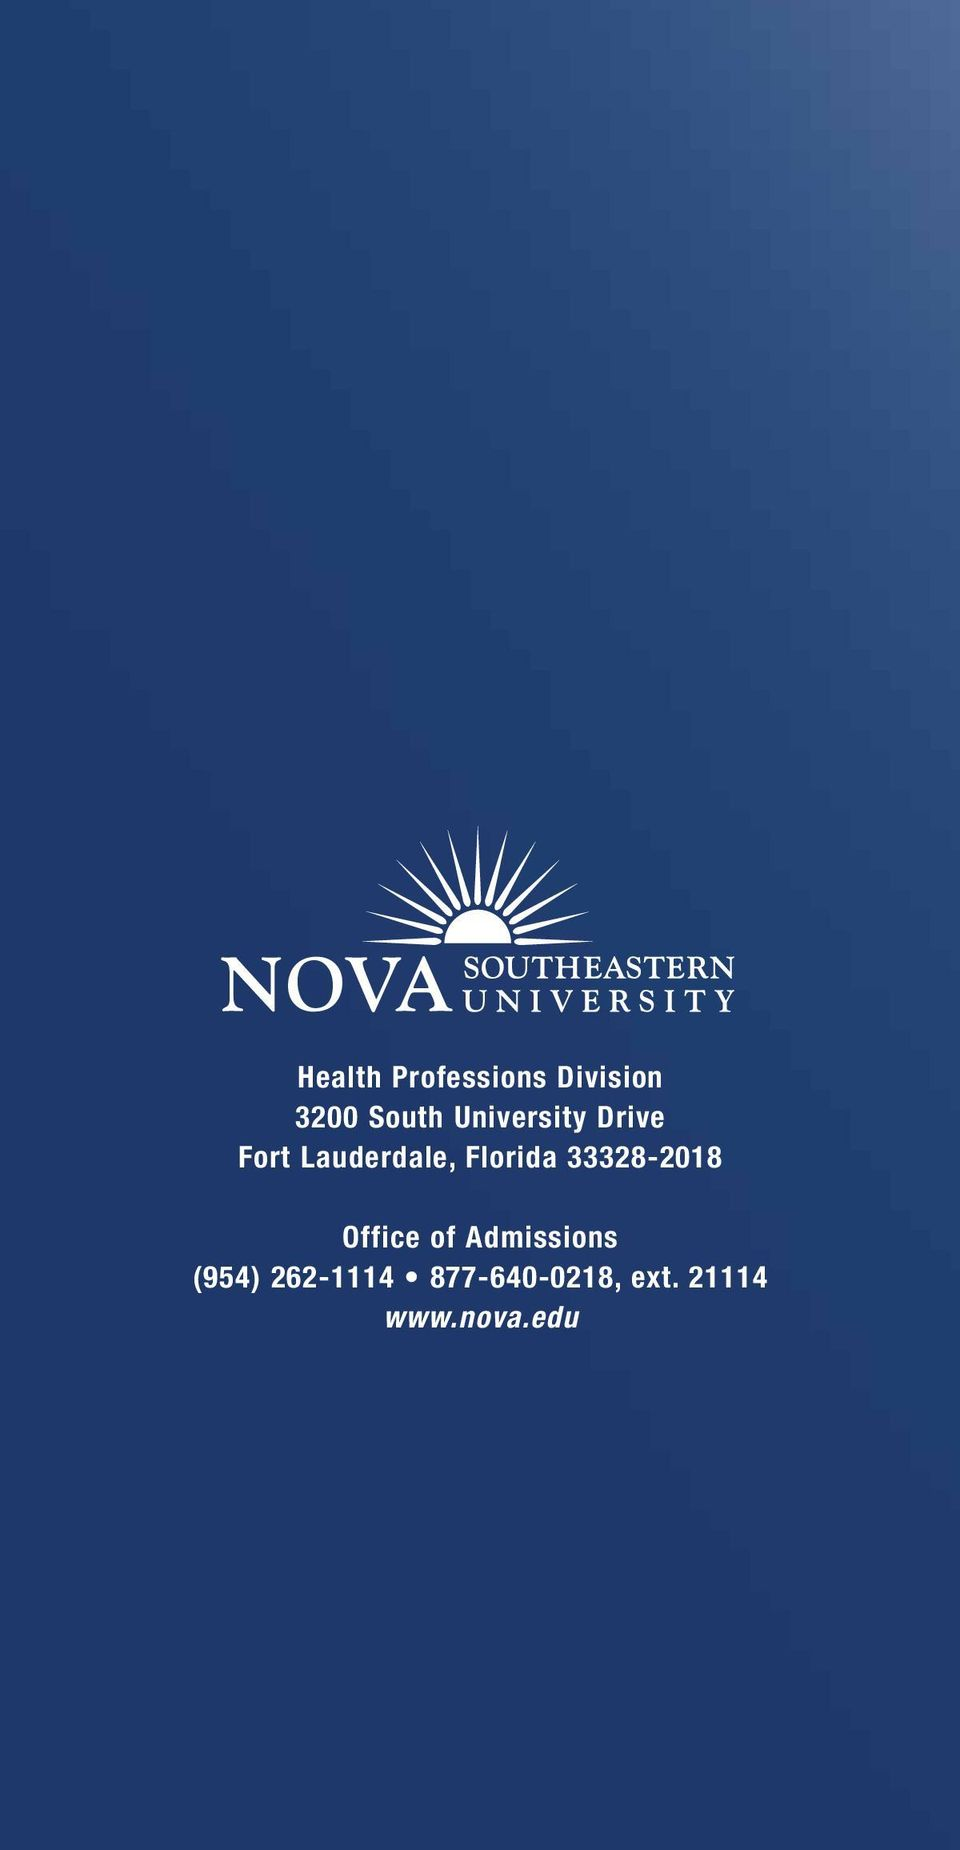 33328-2018 Office of Admissions (954)